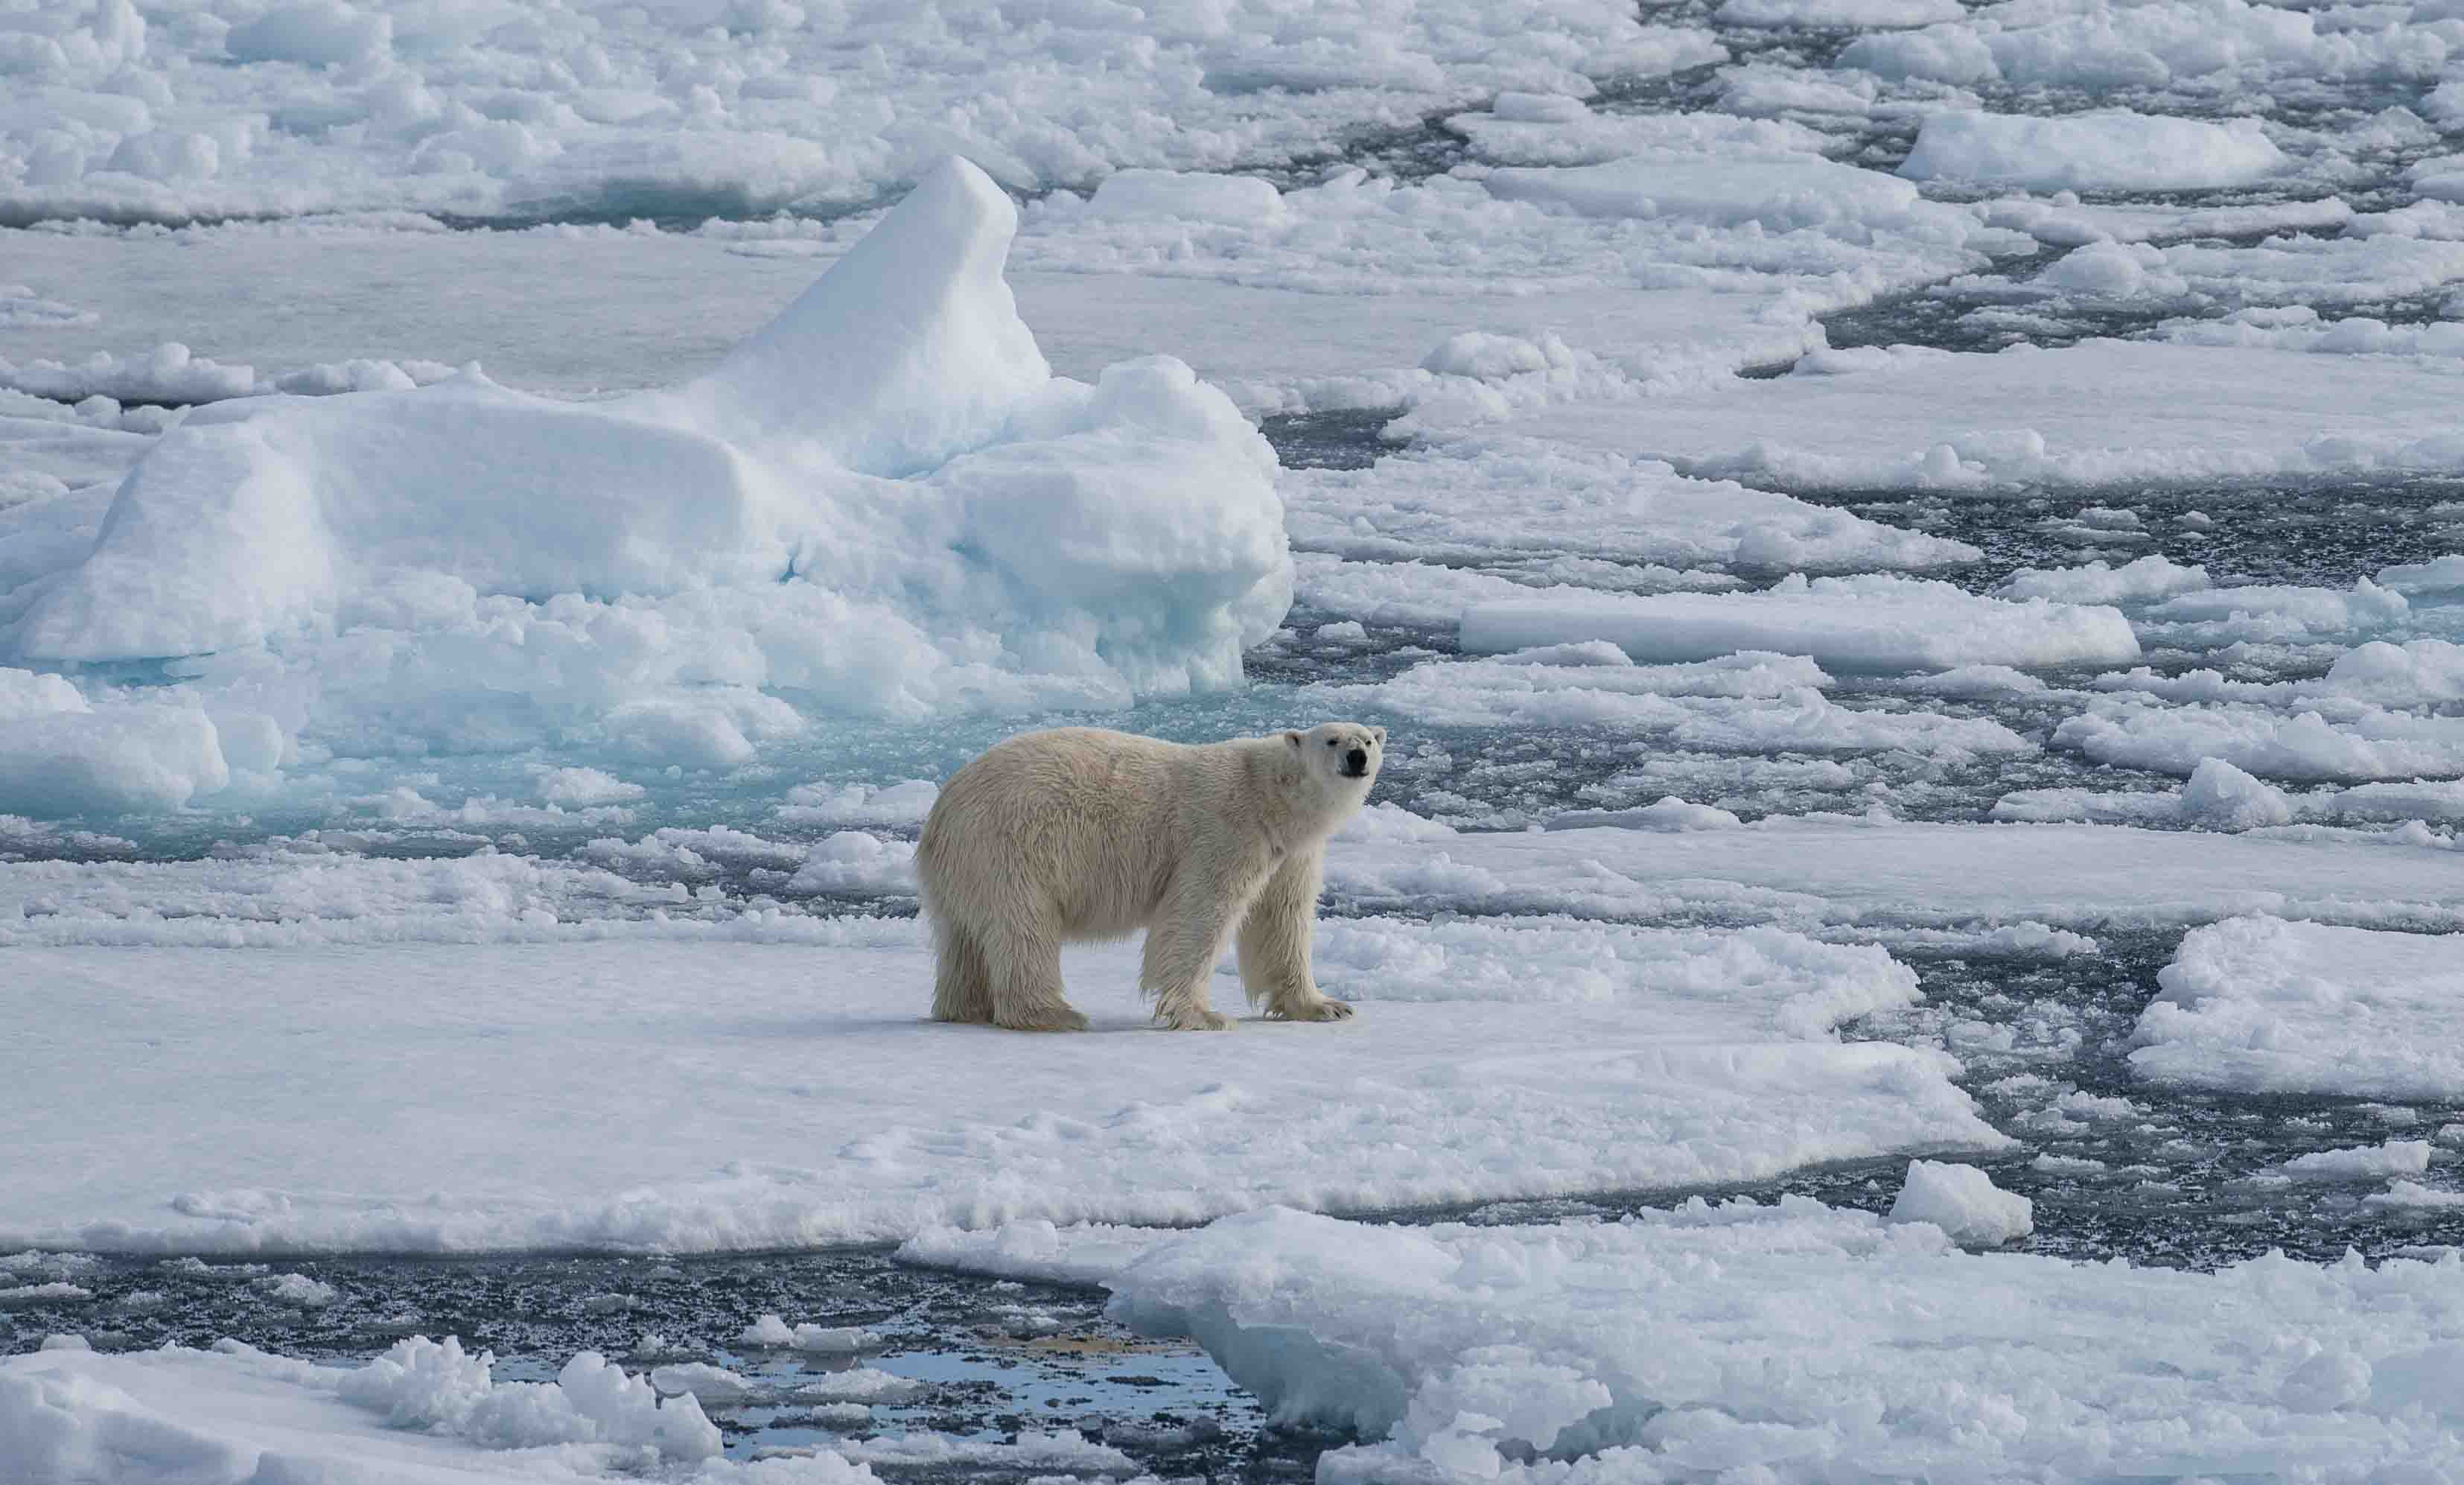 Travel through the Northwest Passage on a small expedition cruise ship with One Ocean Expeditions to see polar bears.